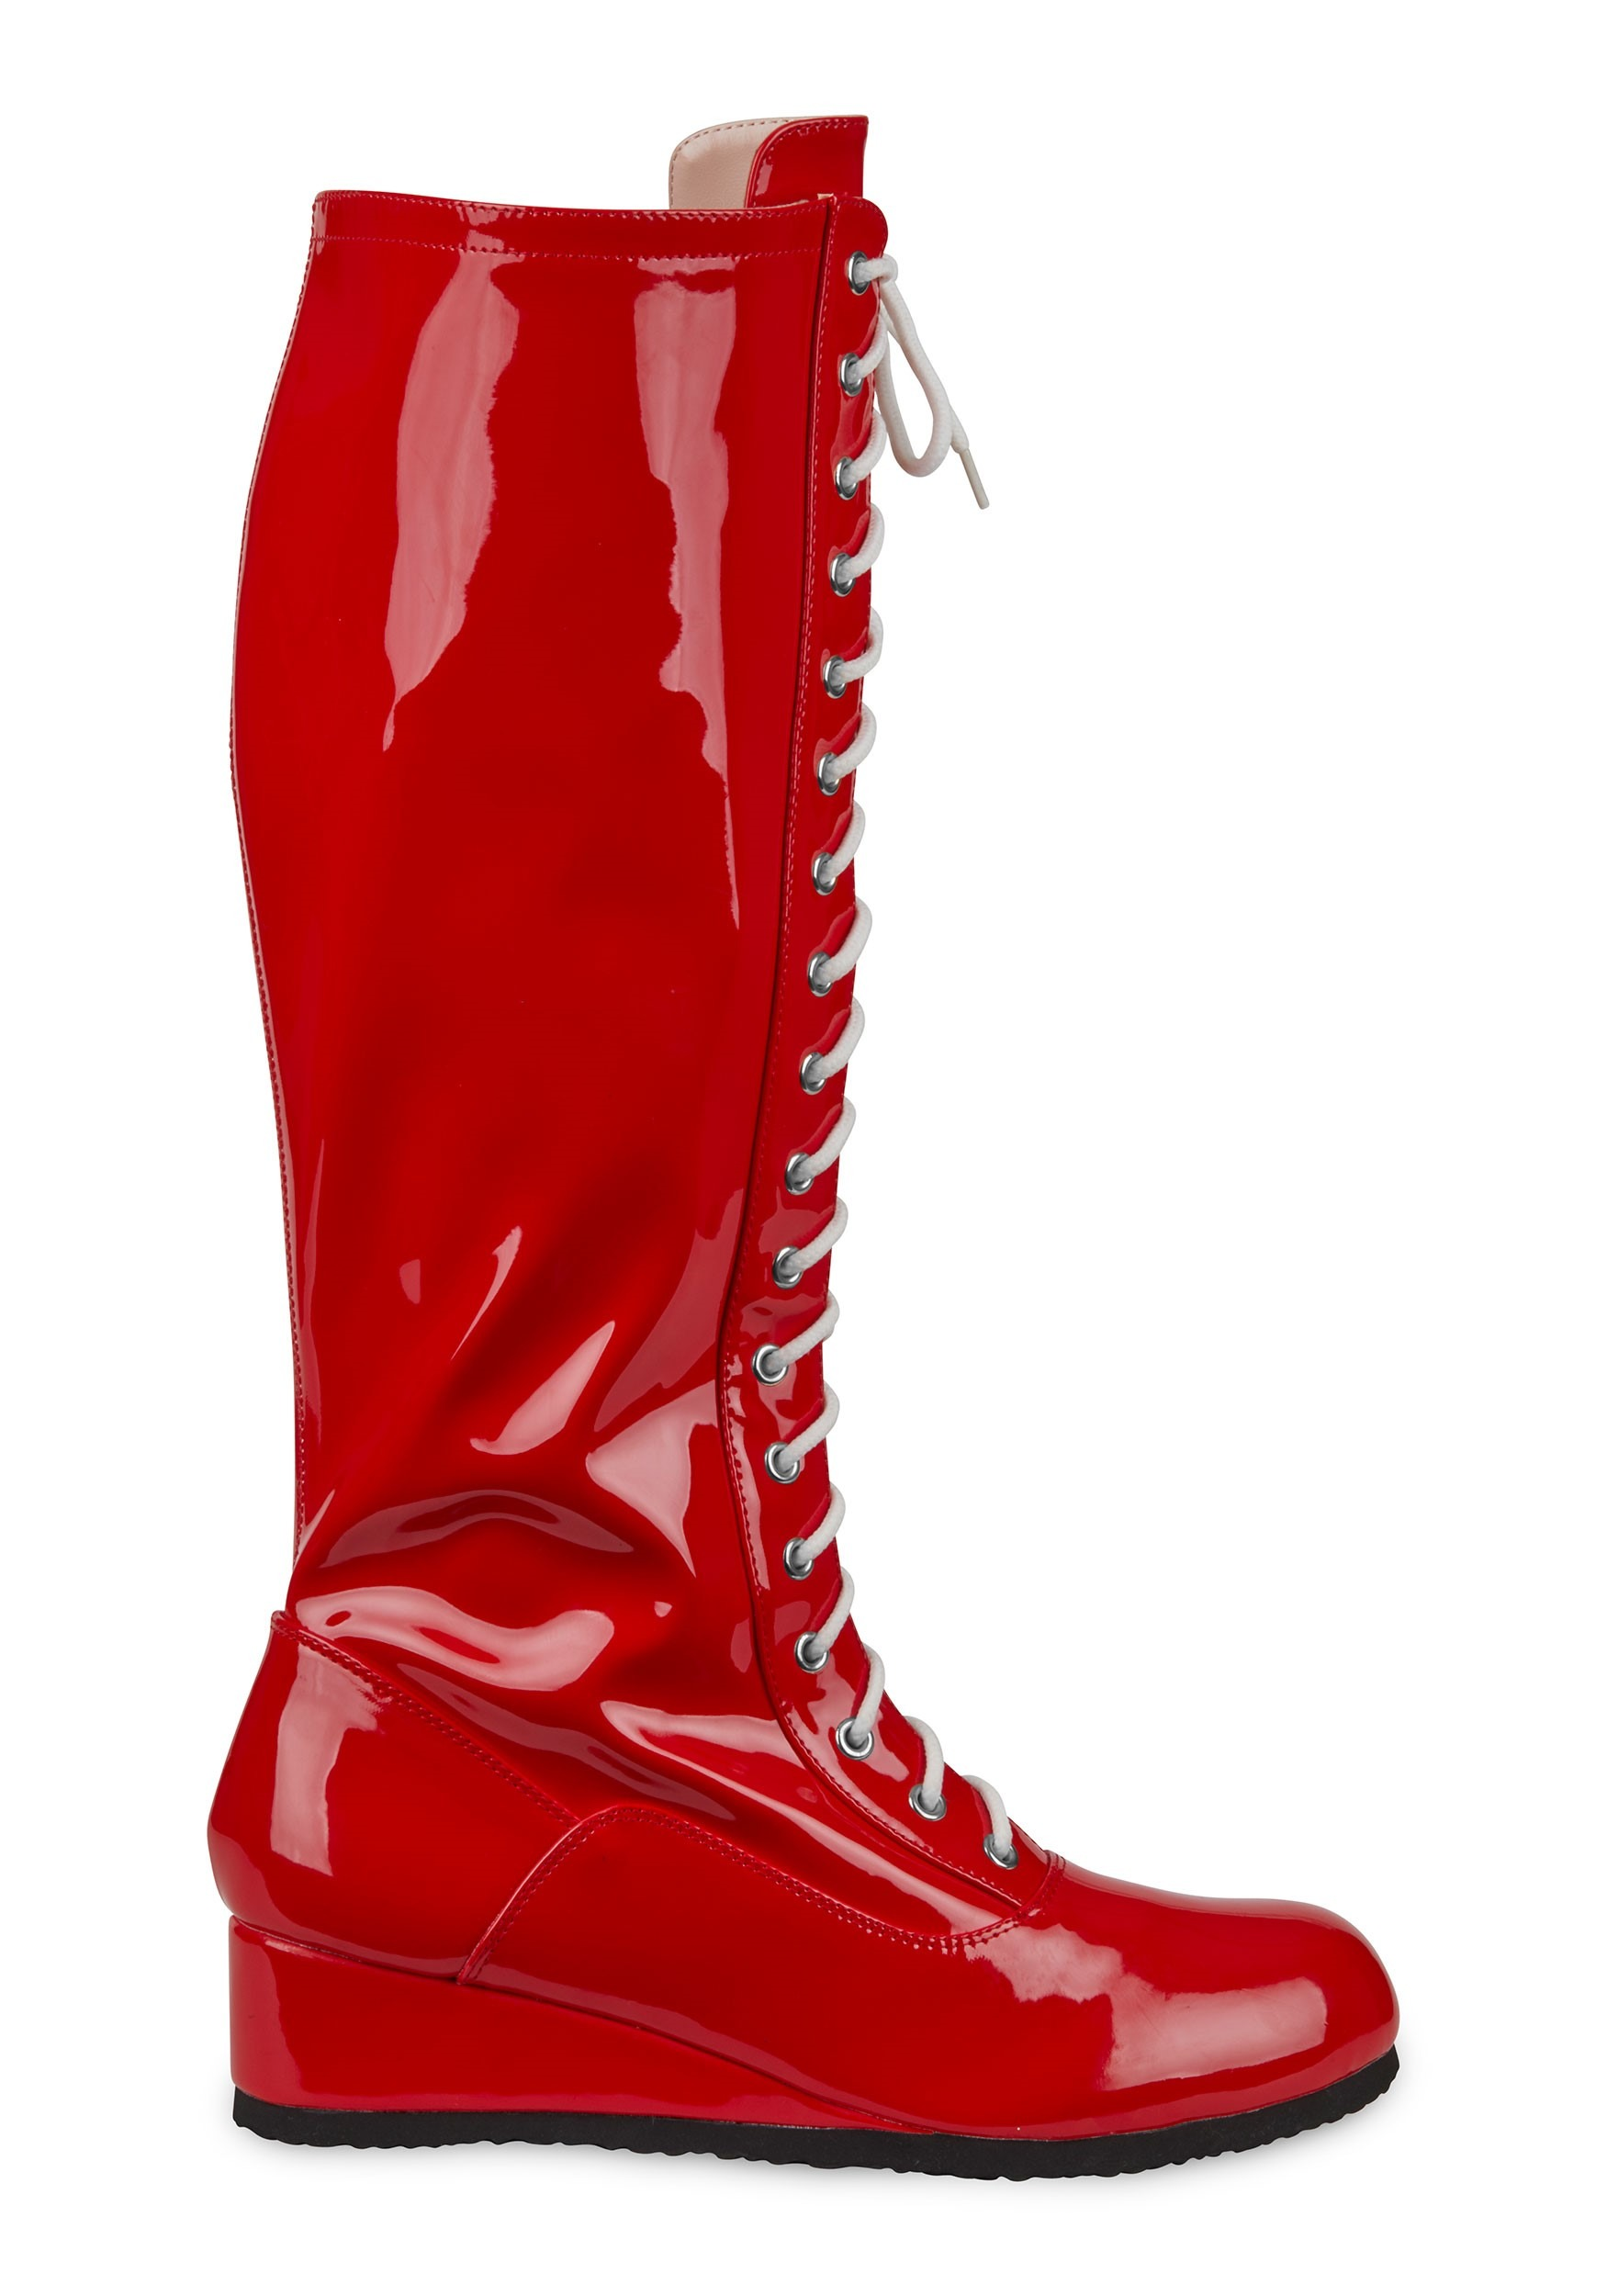 Red Boots For Men